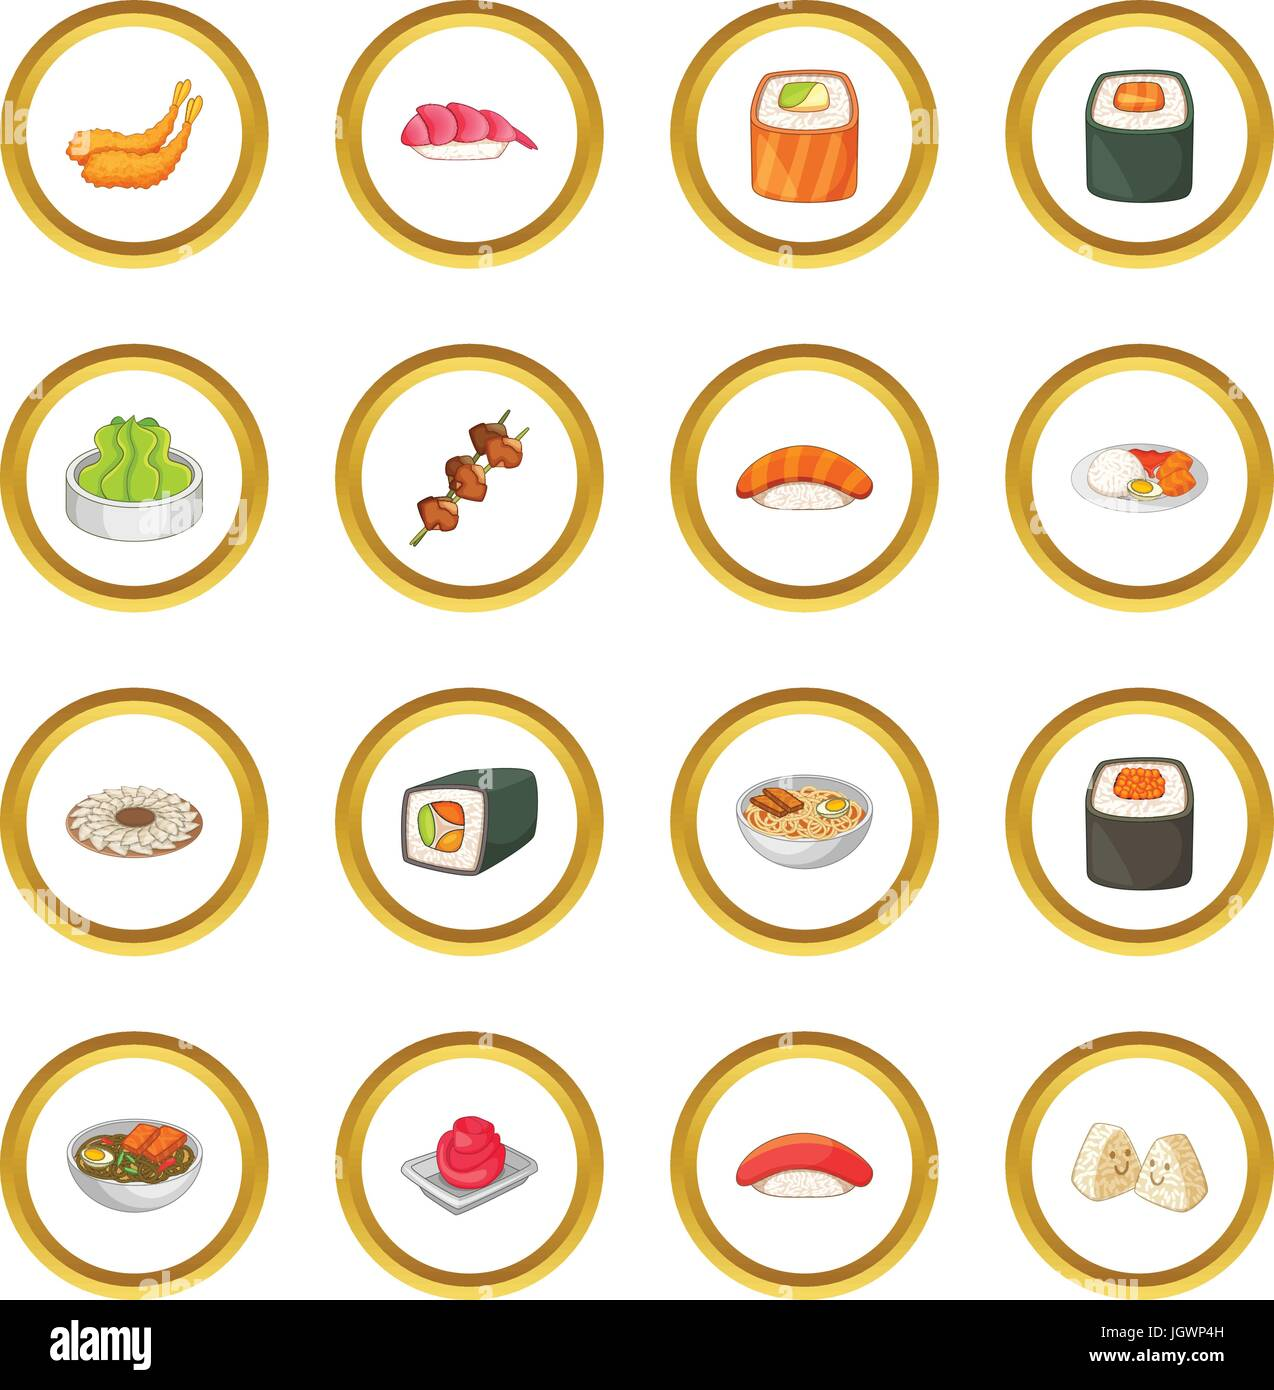 Japanese food icons circle - Stock Vector